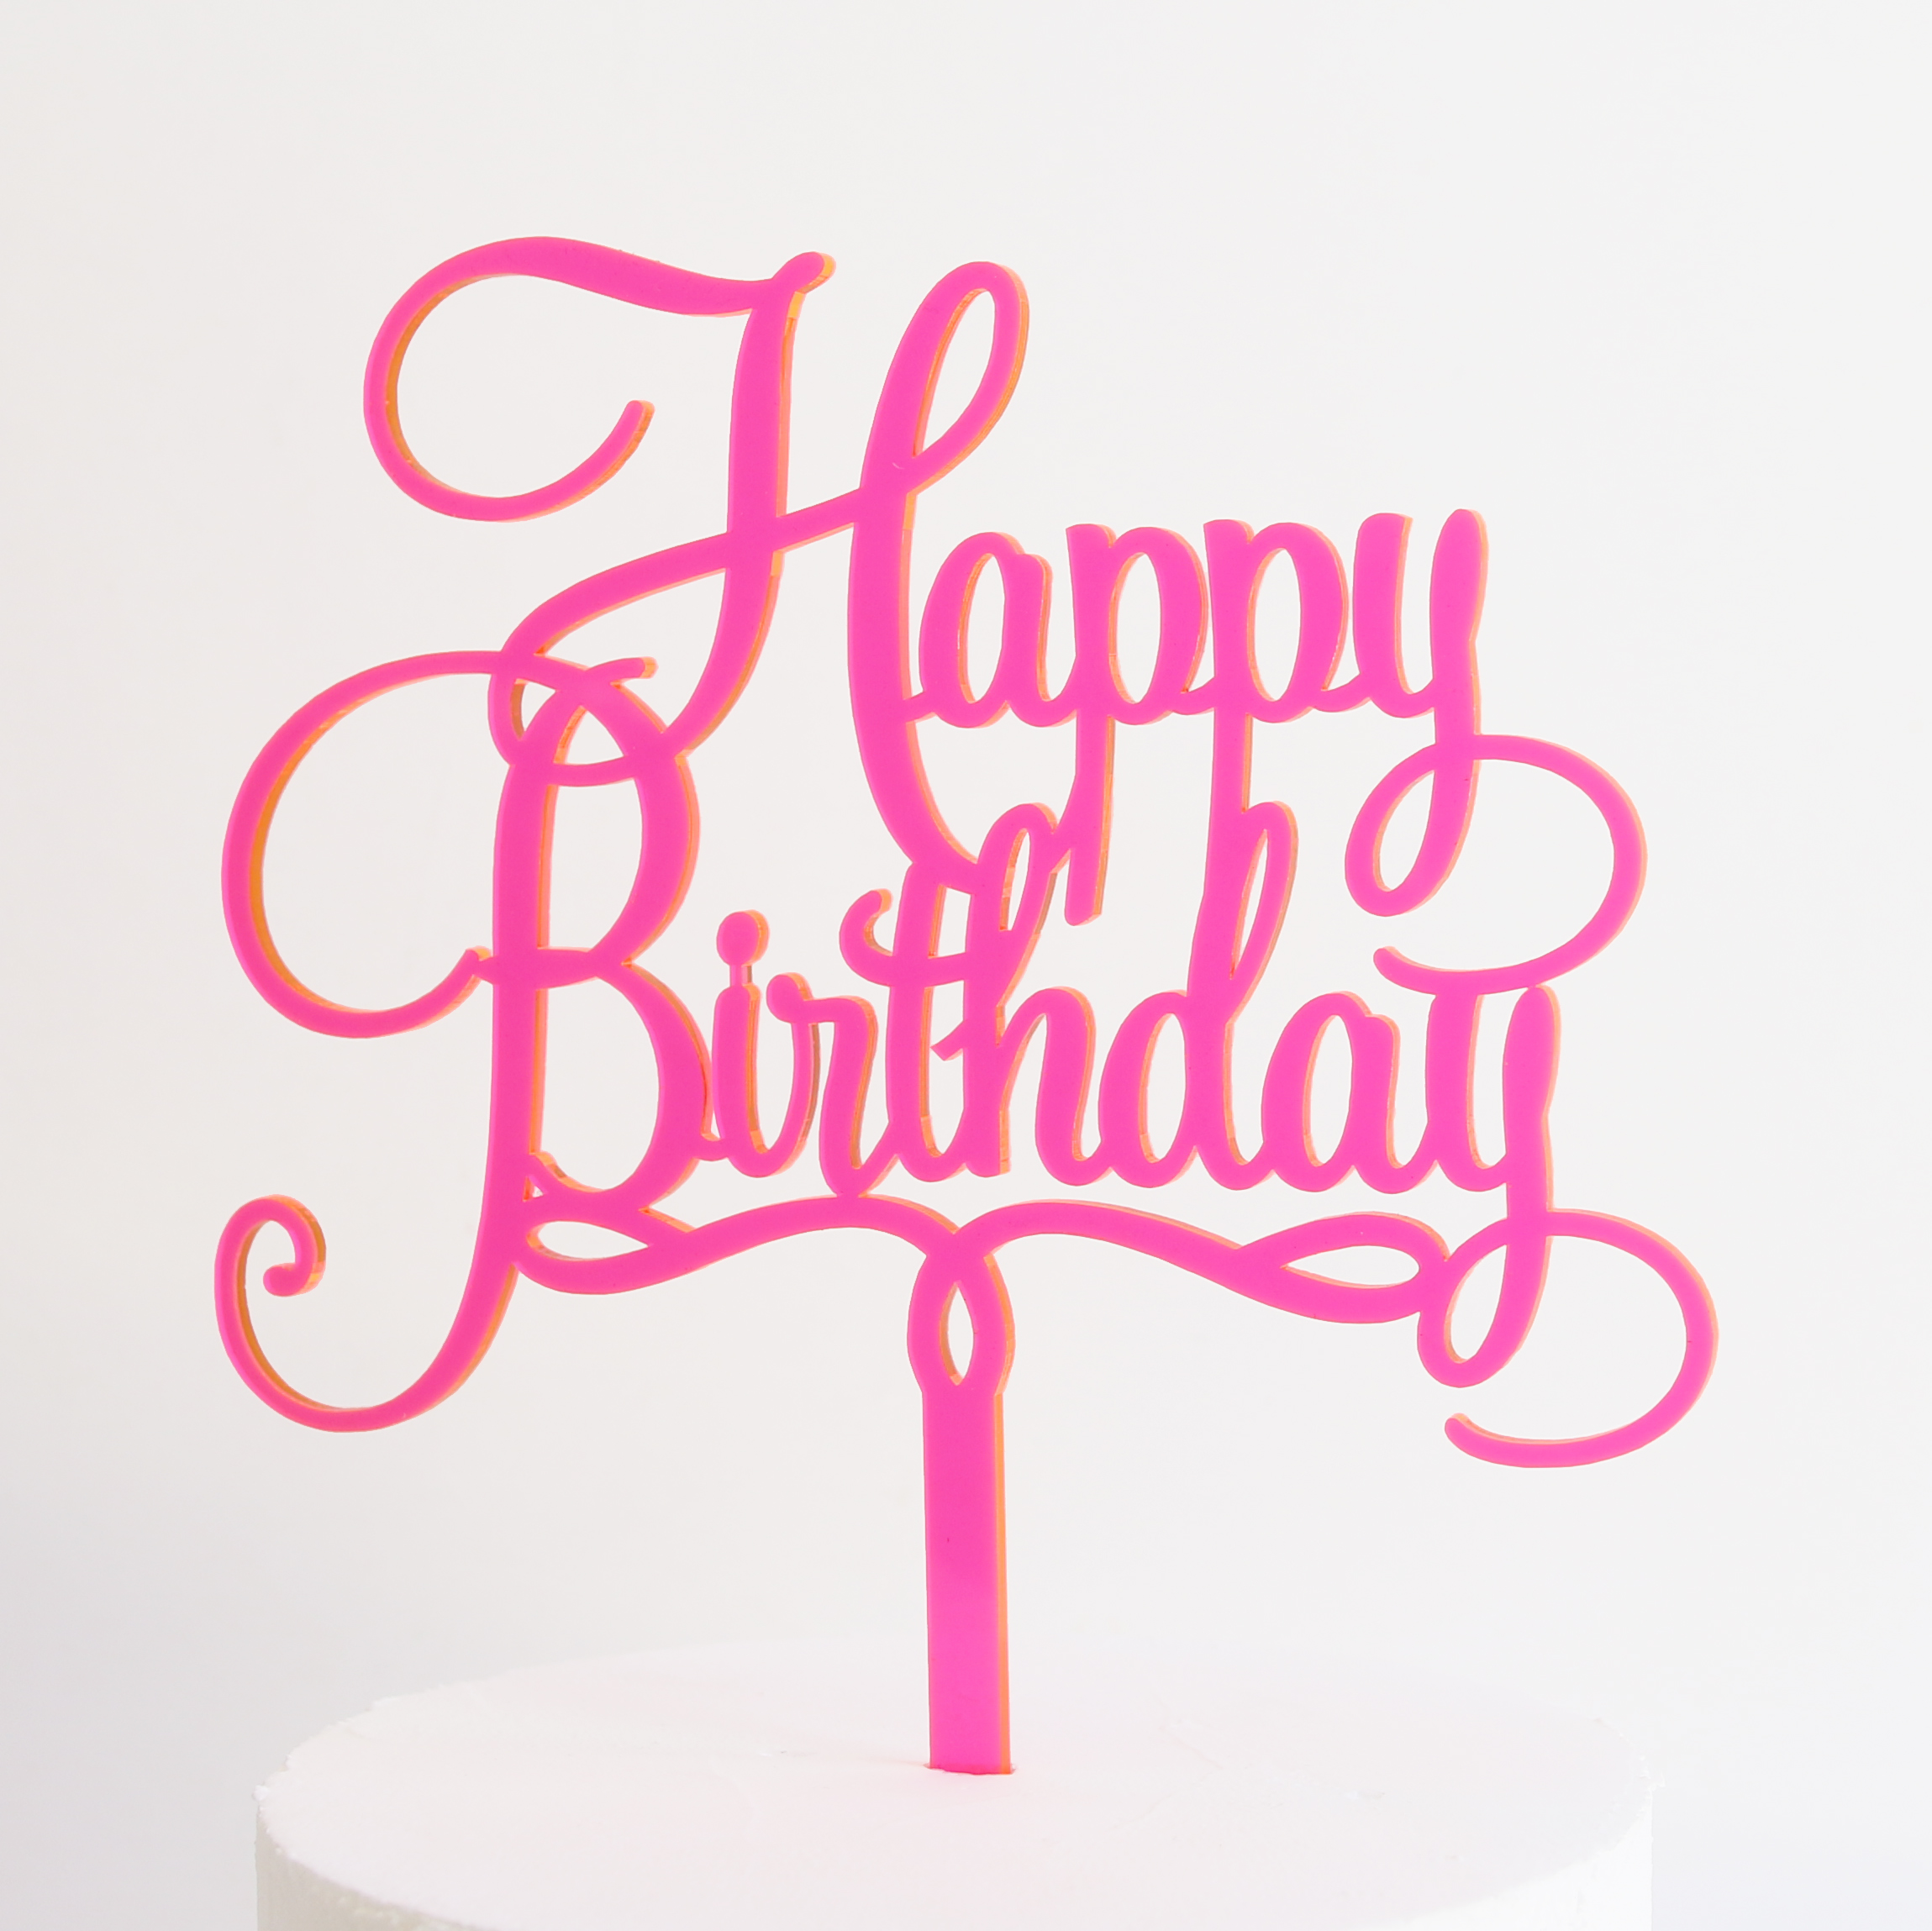 photograph regarding Happy Birthday Cake Topper Printable called Satisfied Birthday Cake Topper